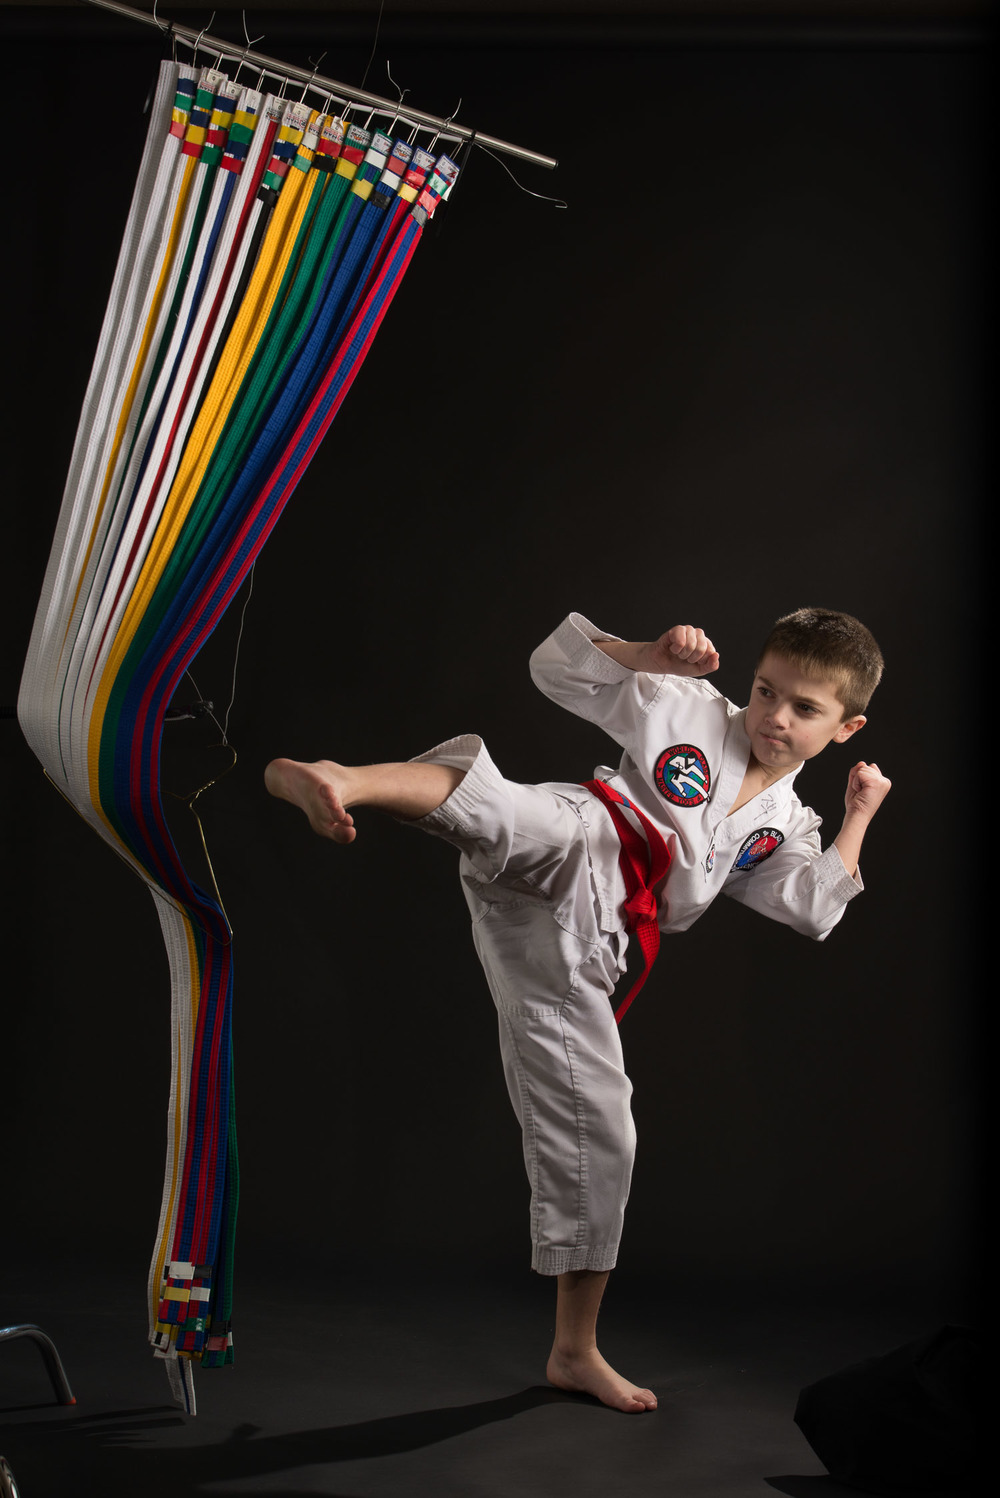 TAEKWONDO BOY KICK BELTS SHOOT.jpg